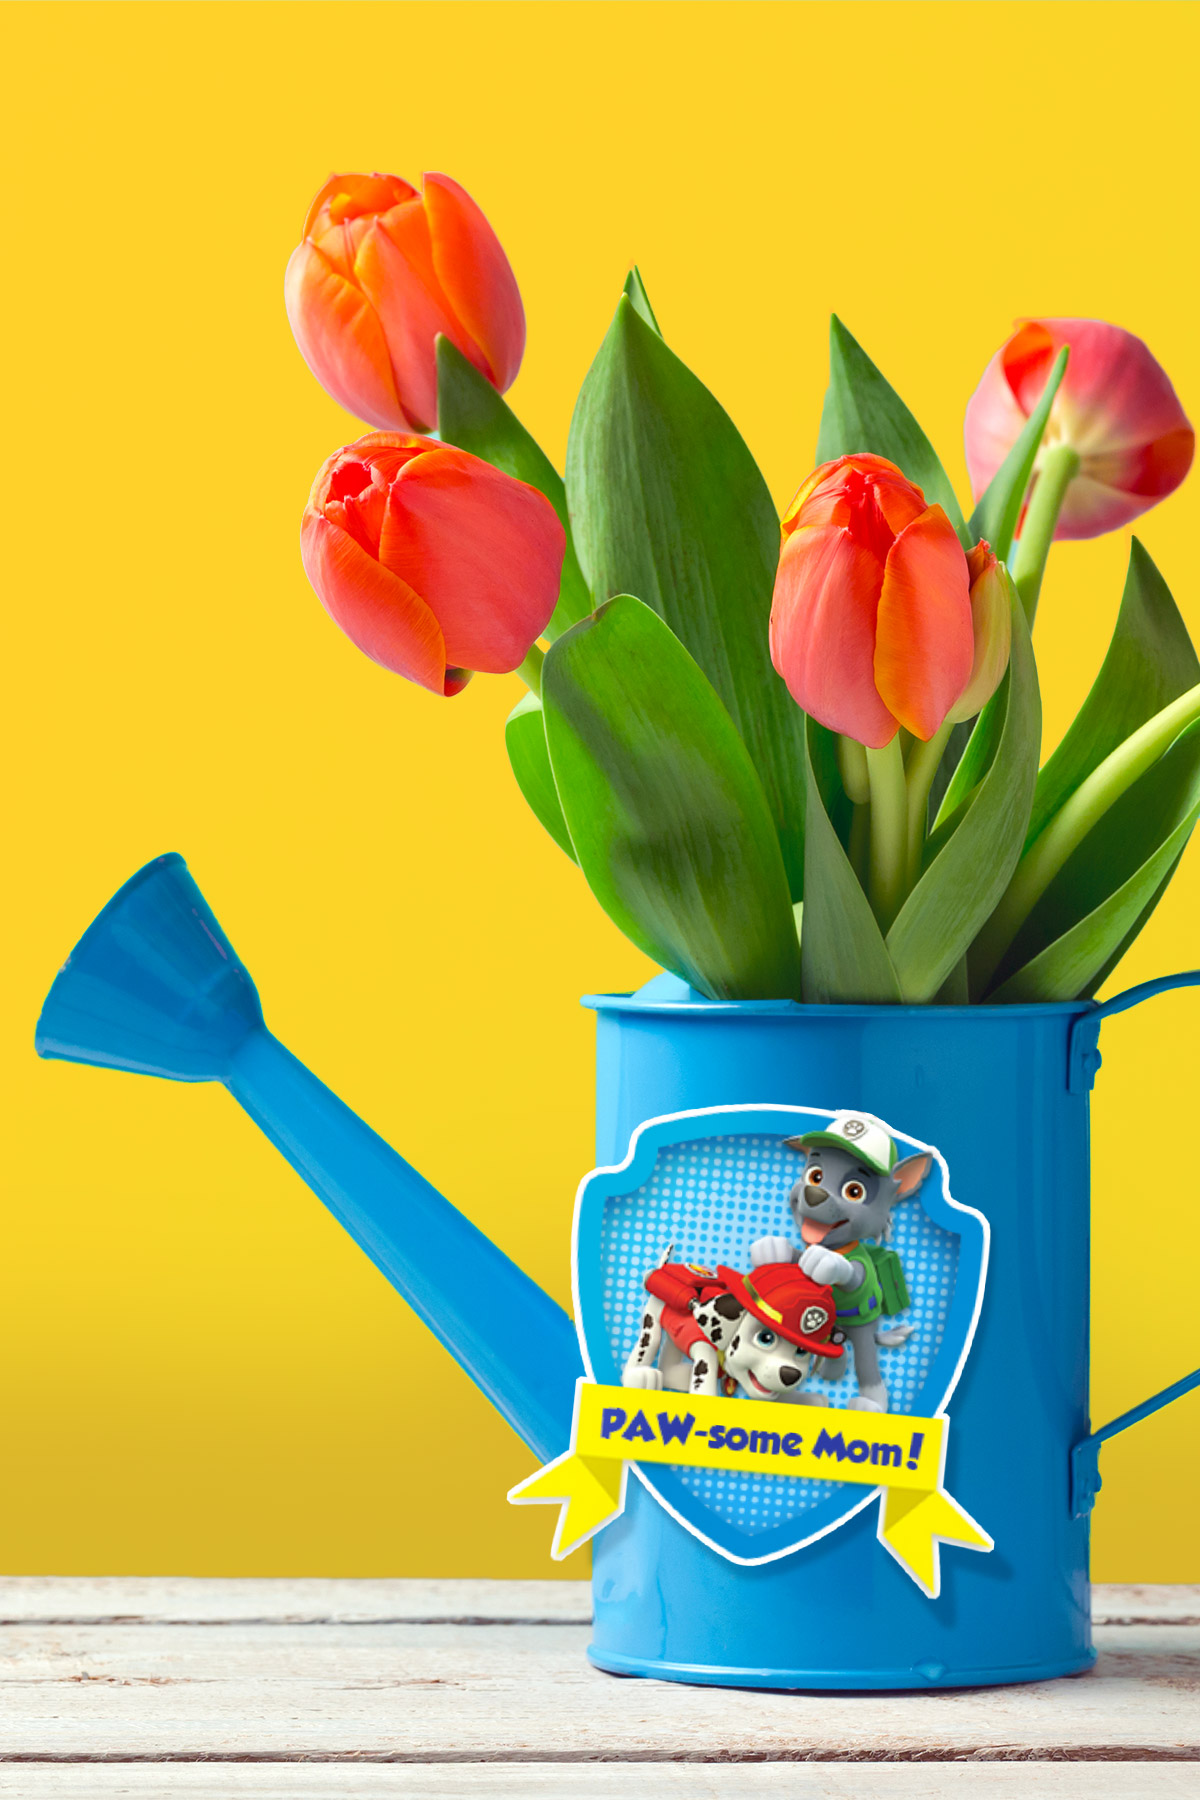 PAW Patrol Mother's Day Stickers